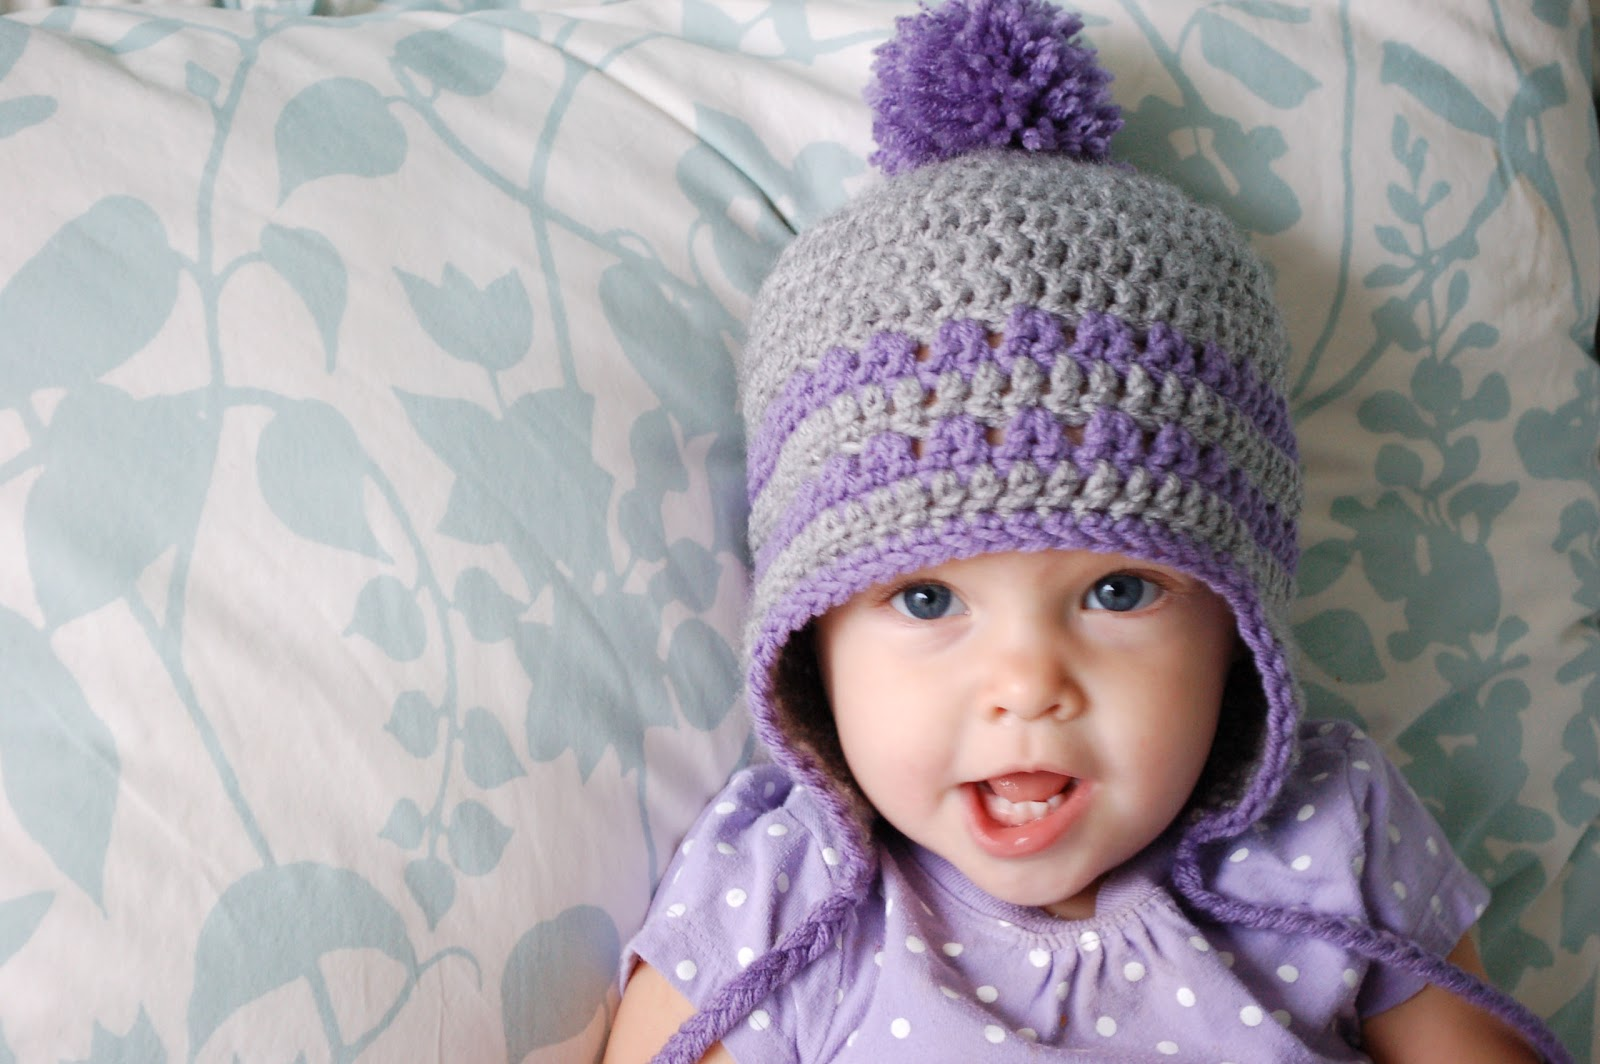 Free Crochet Patterns For Baby And Toddler Hats : Alli Crafts: Free Pattern: Earflap Hat - 9-12 Months